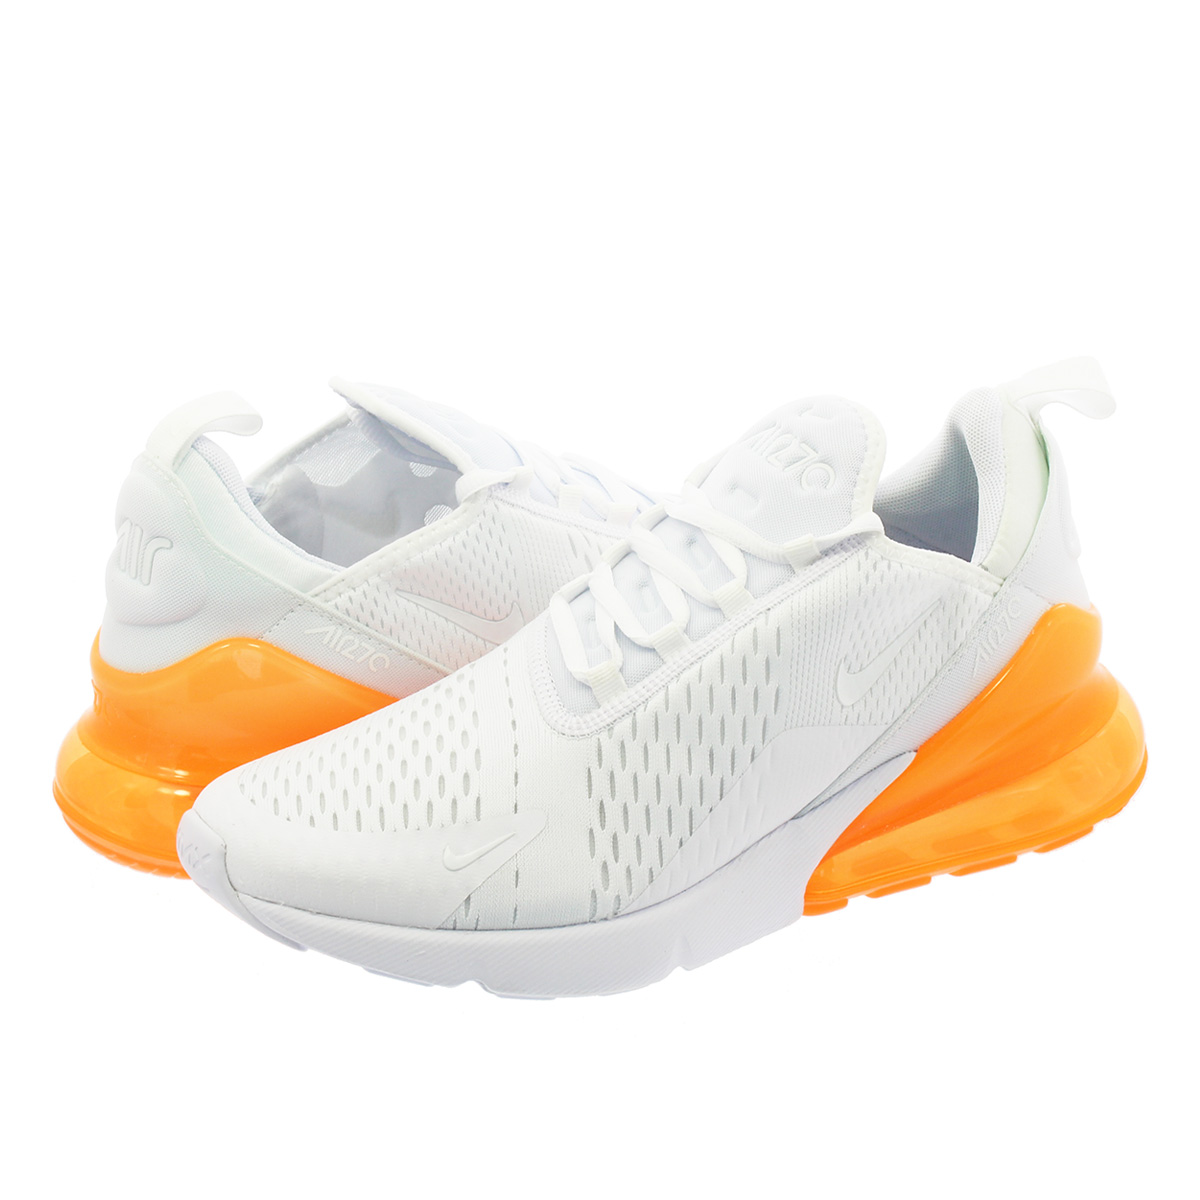 newest collection 7a88e d5a7c NIKE AIR MAX 270 Kie Ney AMAX 270 WHITE/TOTAL ORANGE ah8050-102